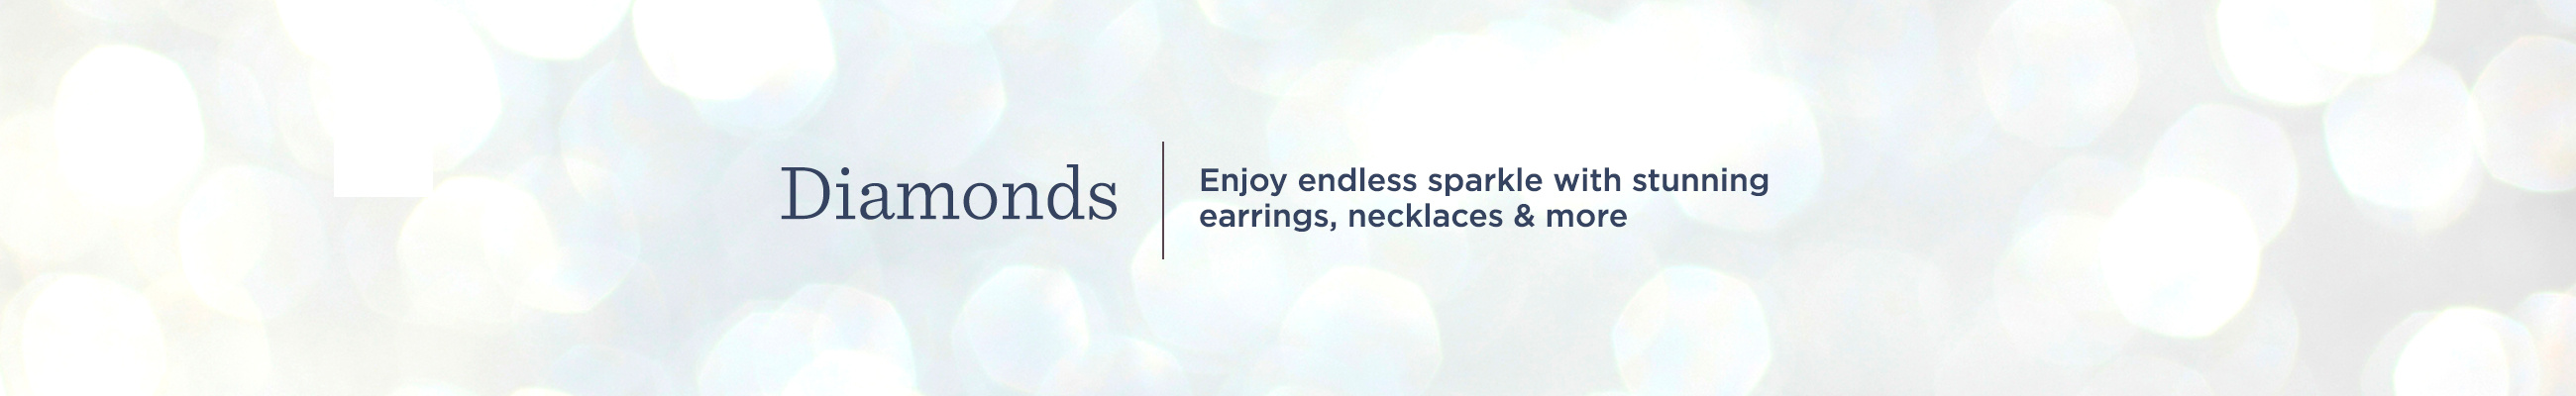 Diamonds. Enjoy endless sparkle with stunning earrings, necklaces & more